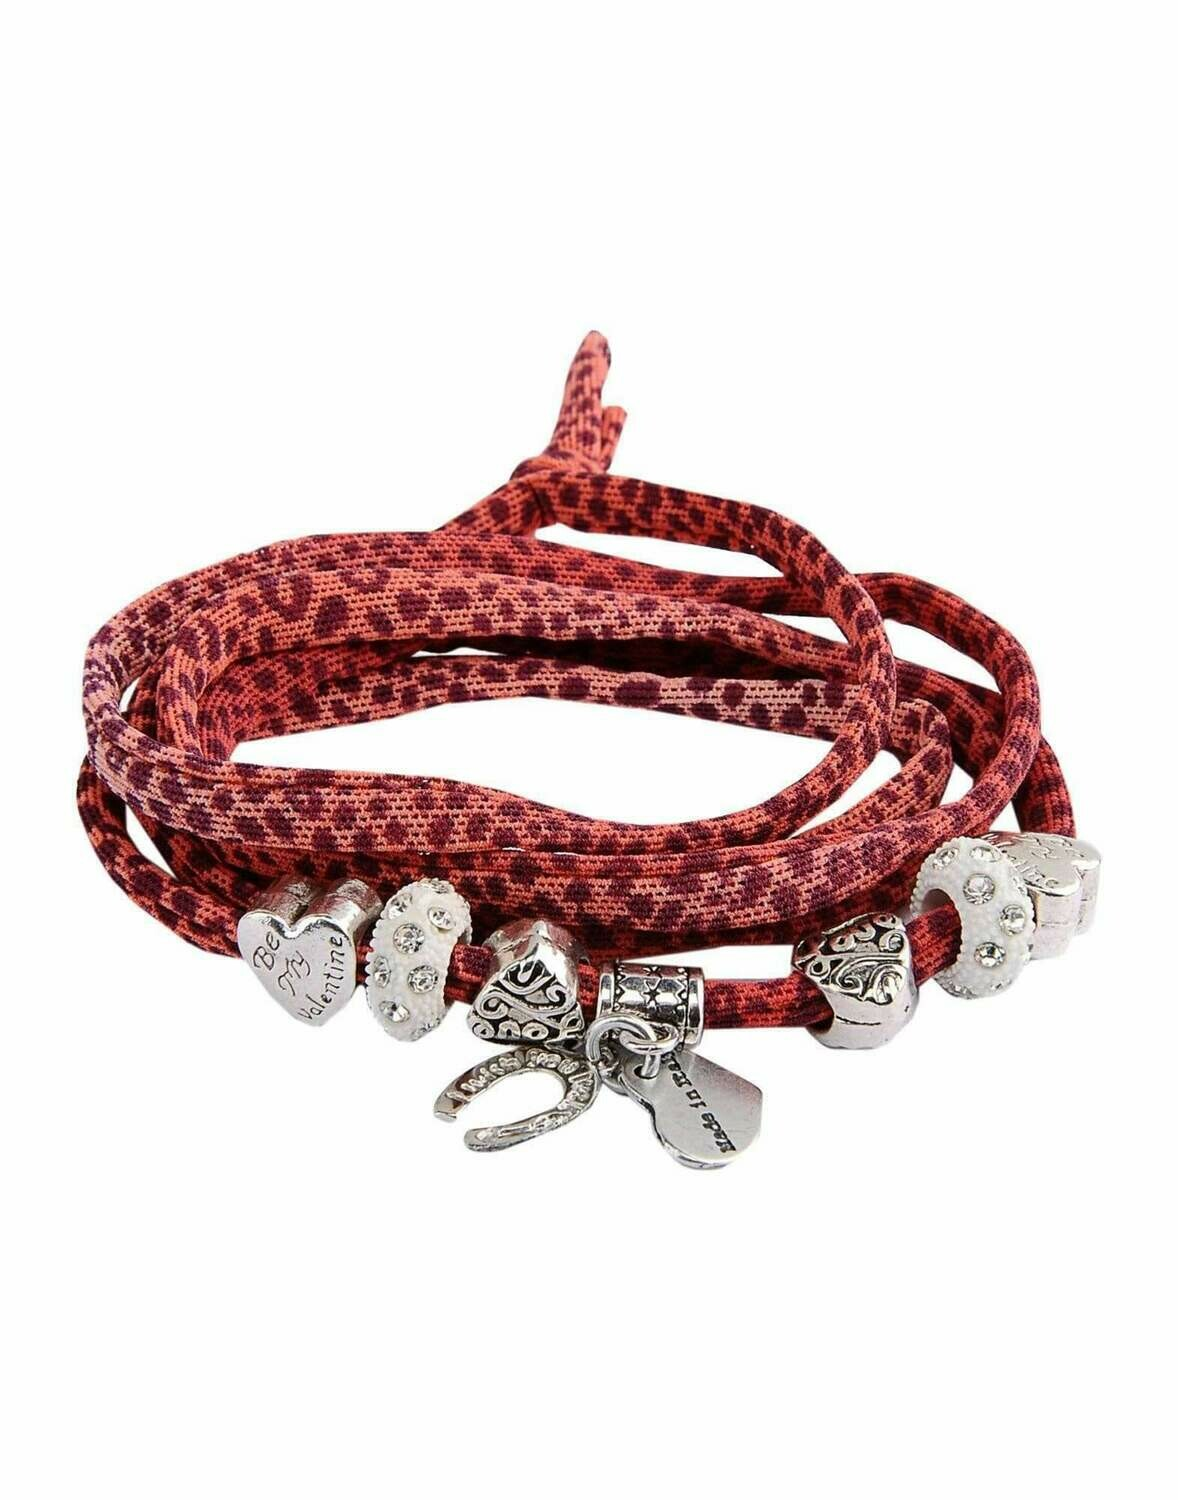 Red Leopard Print Friendship Bracelet with Charms